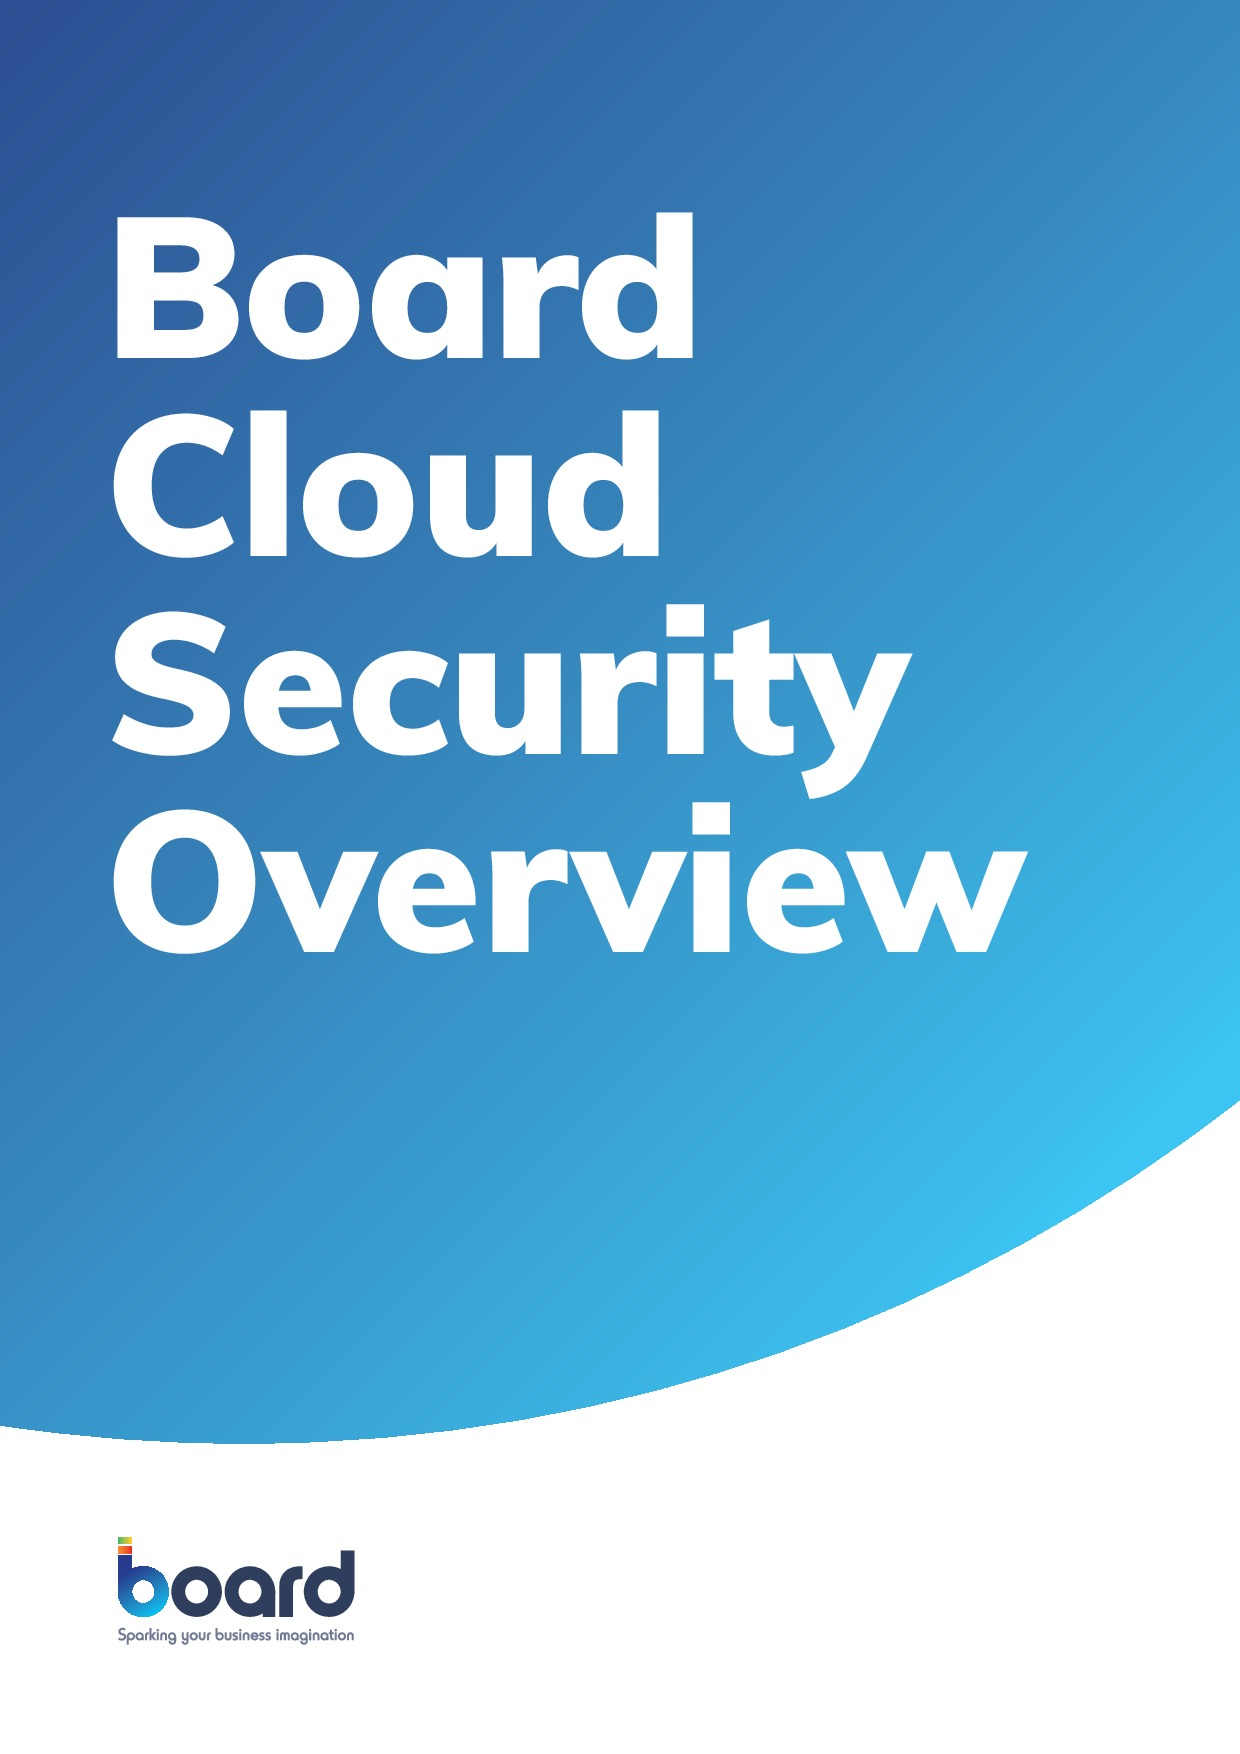 Board Cloud Security Overview | Page 1